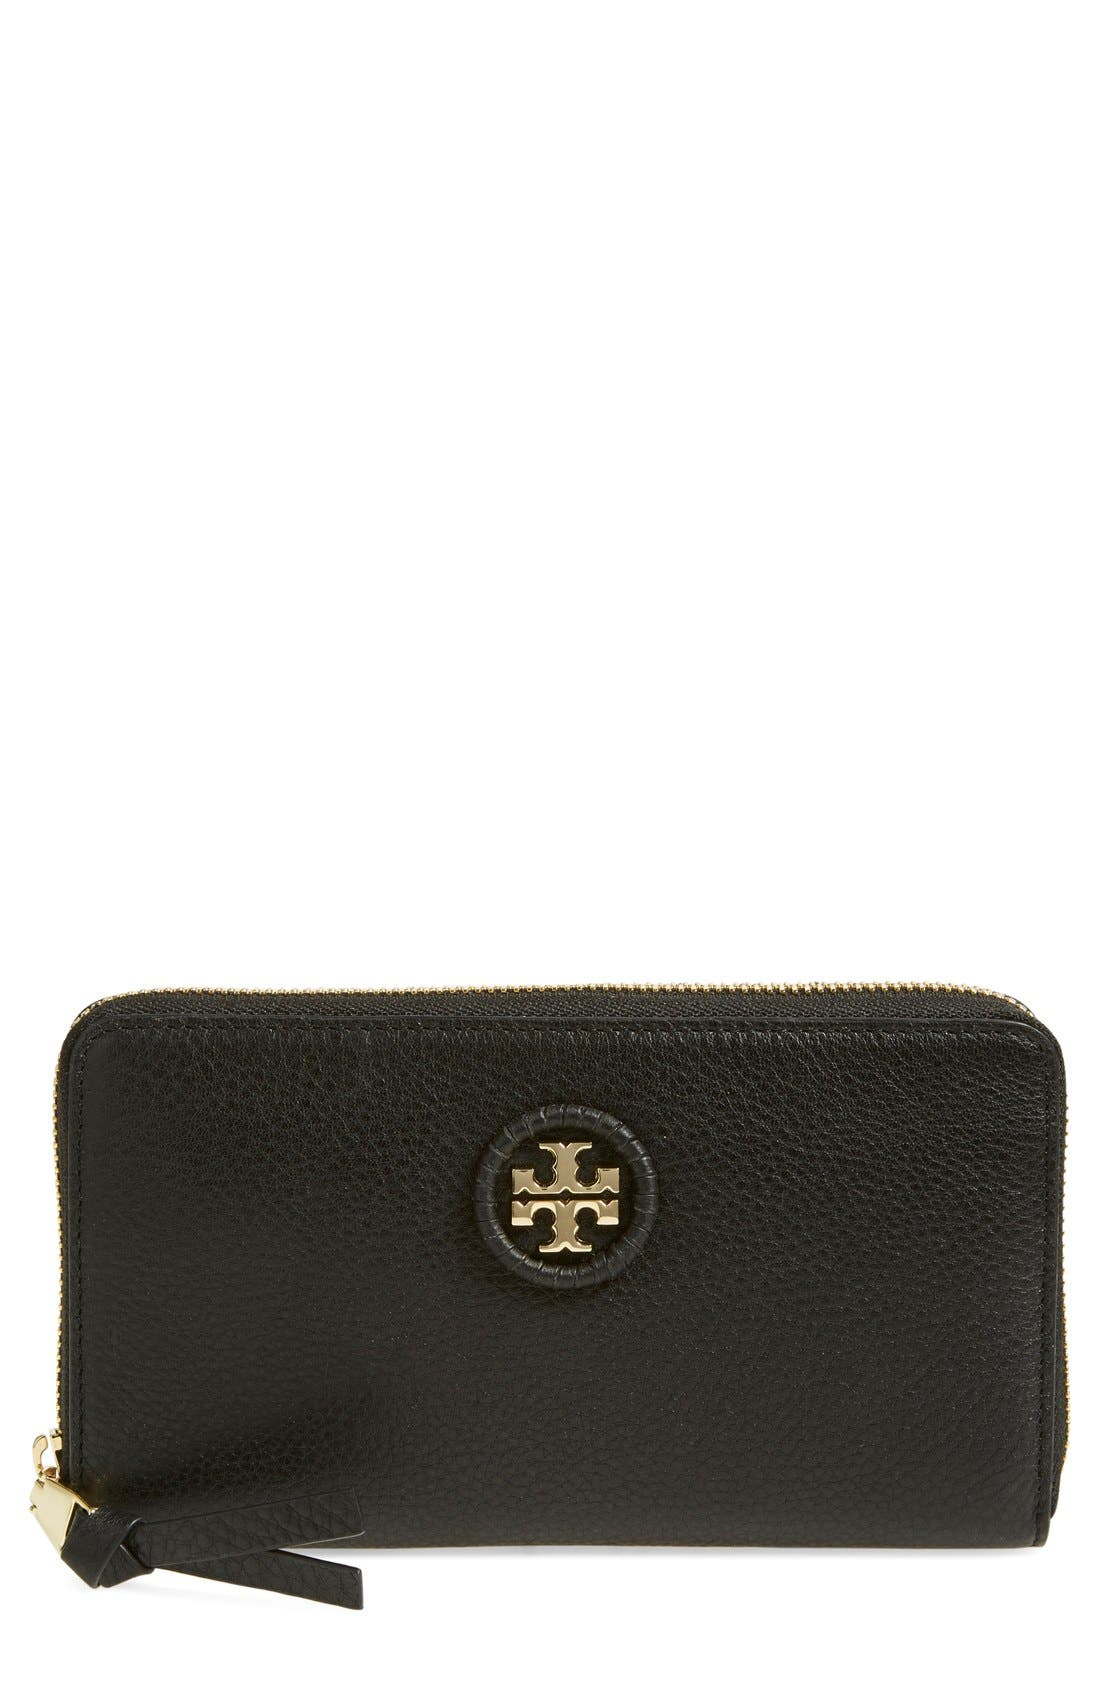 Main Image - Tory Burch Leather Zip Around Continental Wallet (Nordstrom Exclusive)